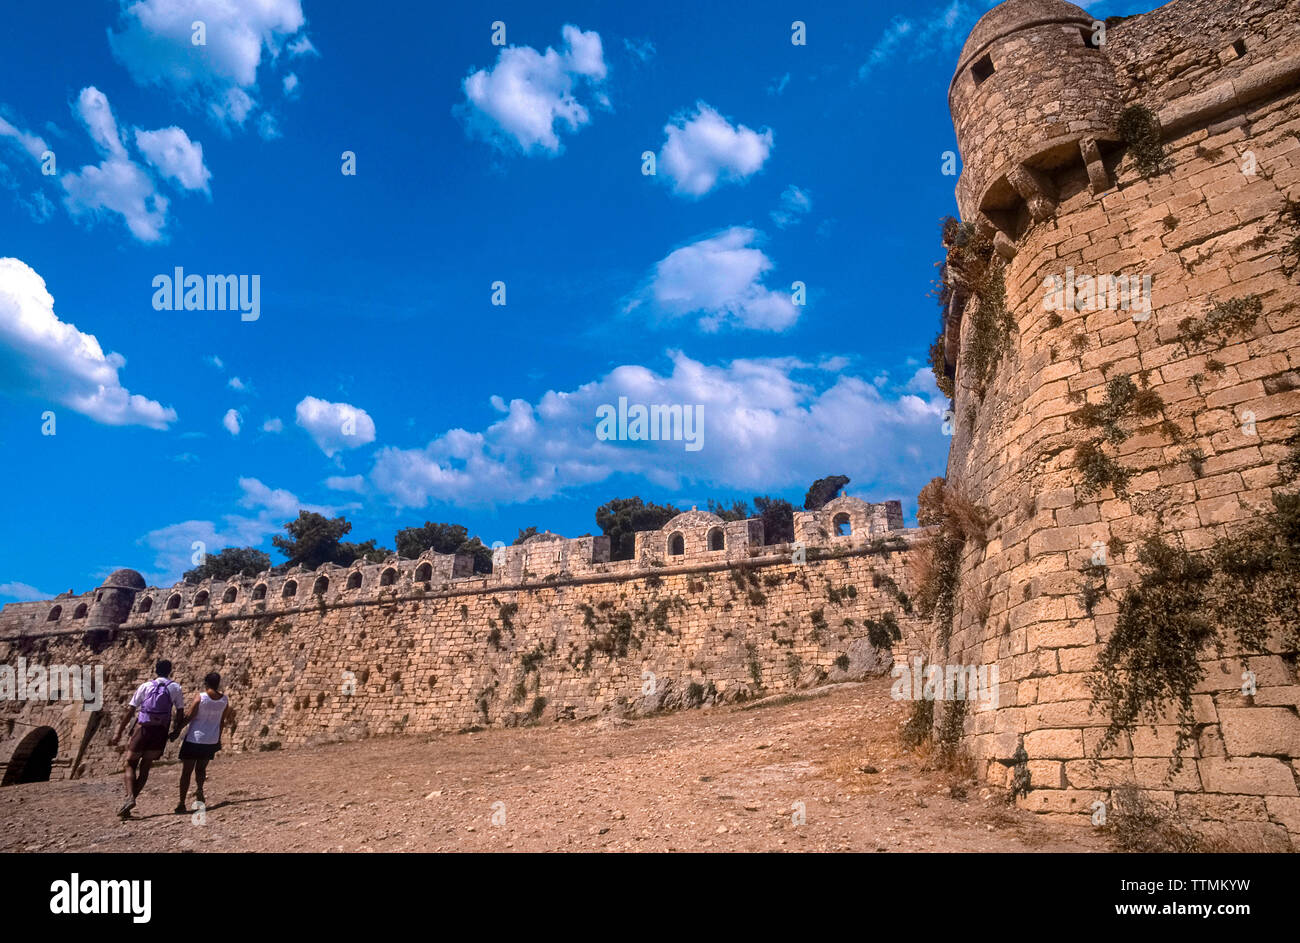 Greece Crete Island -  citadel of the city of Rethymno - Fortress Stock Photo